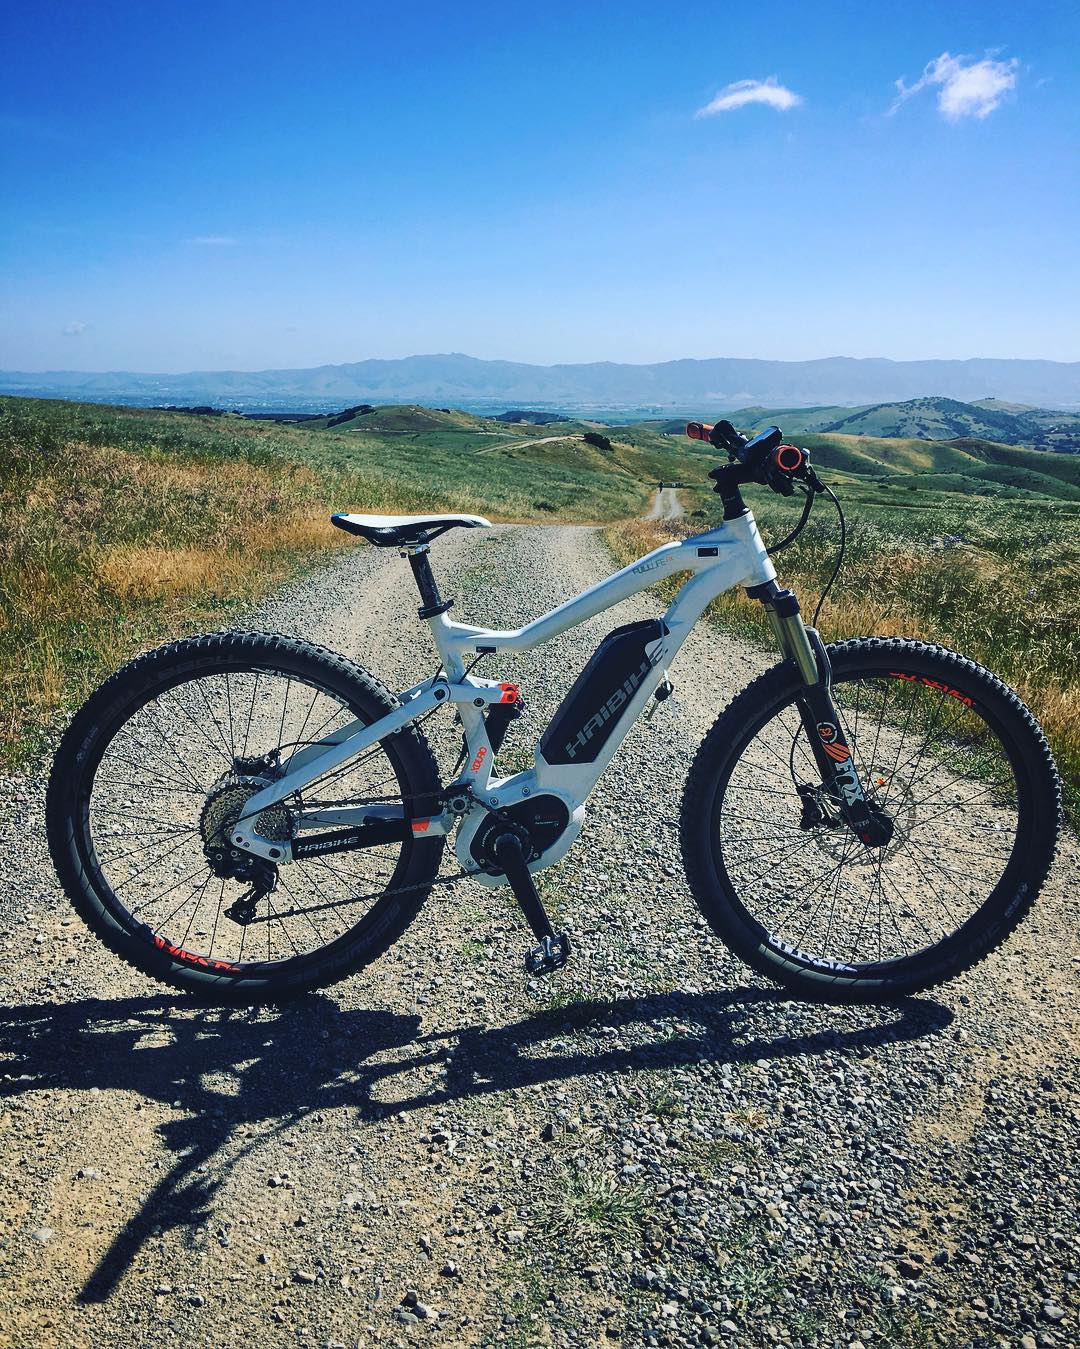 Another beautiful day at #seaotterclassic ! #xduro #emtb #mtb #ebike #fullliferx #haibike